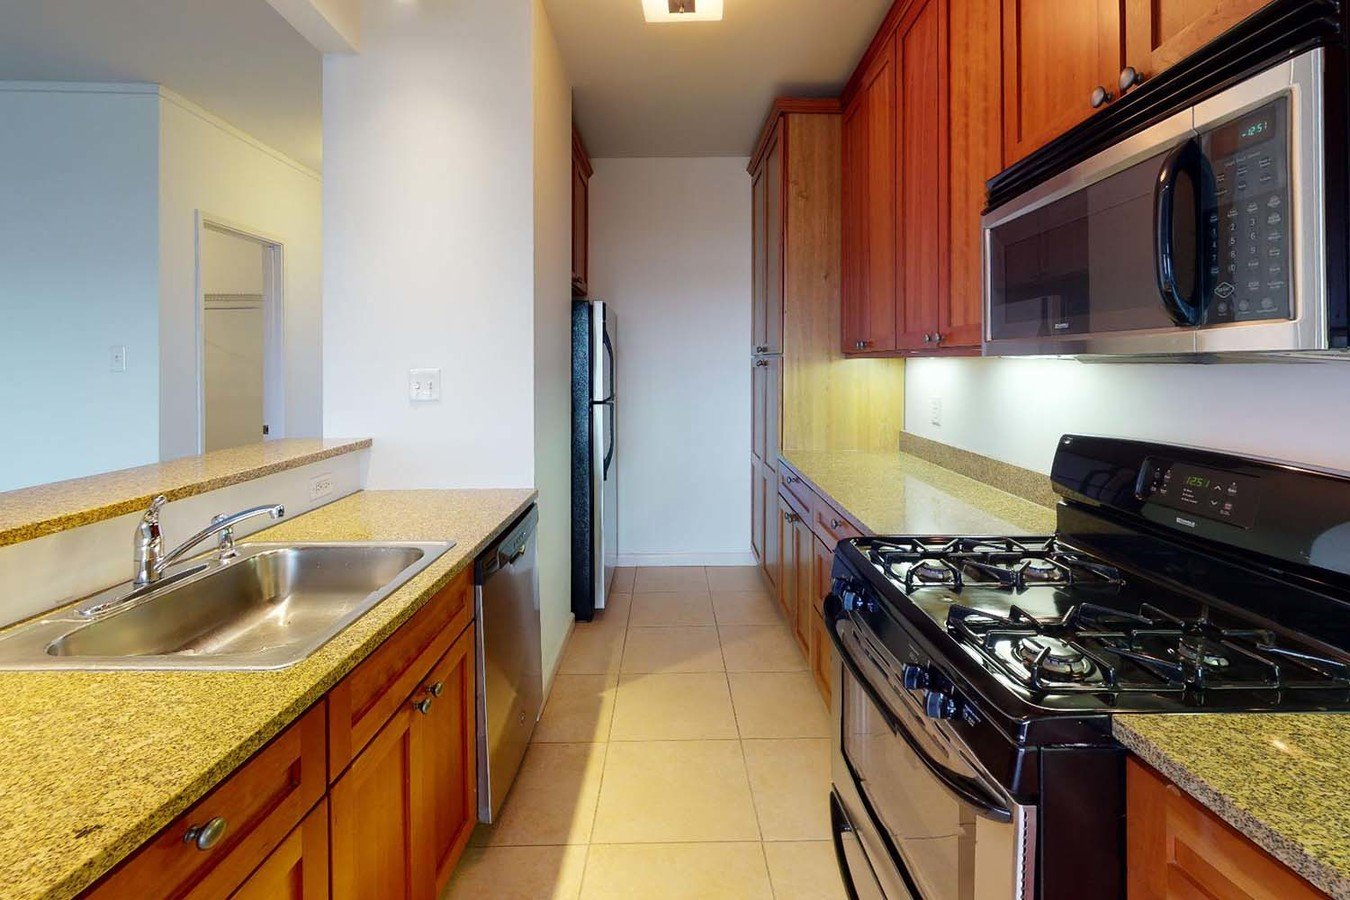 2 Bedrooms 1 Bathroom Apartment for rent at Dorchester in St Louis, MO